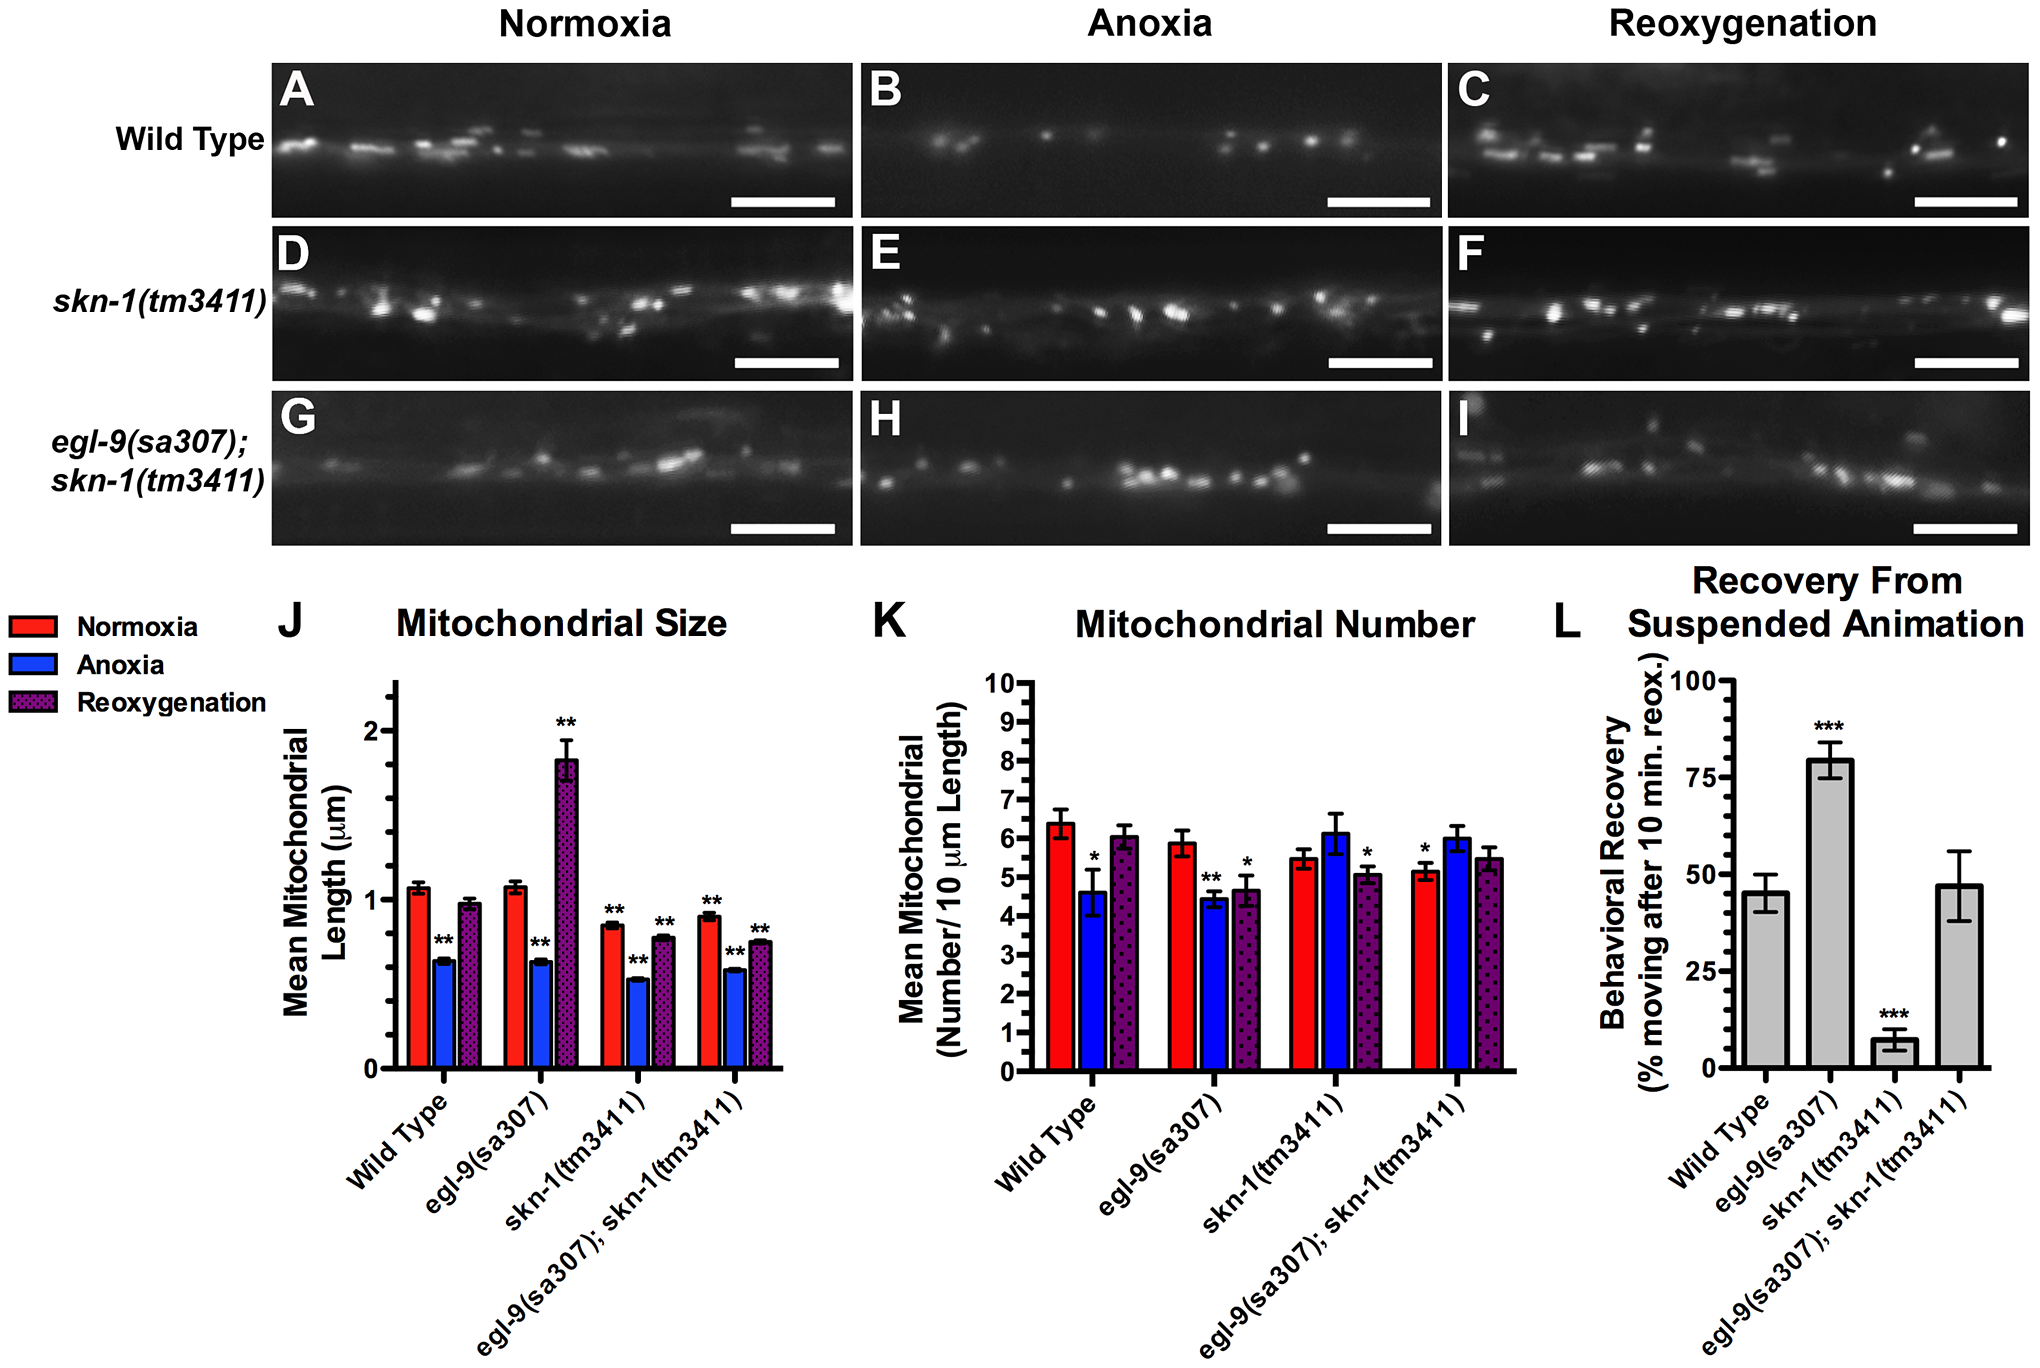 SKN-1 is required for anoxia-induced mitochondrial hyperfusion.